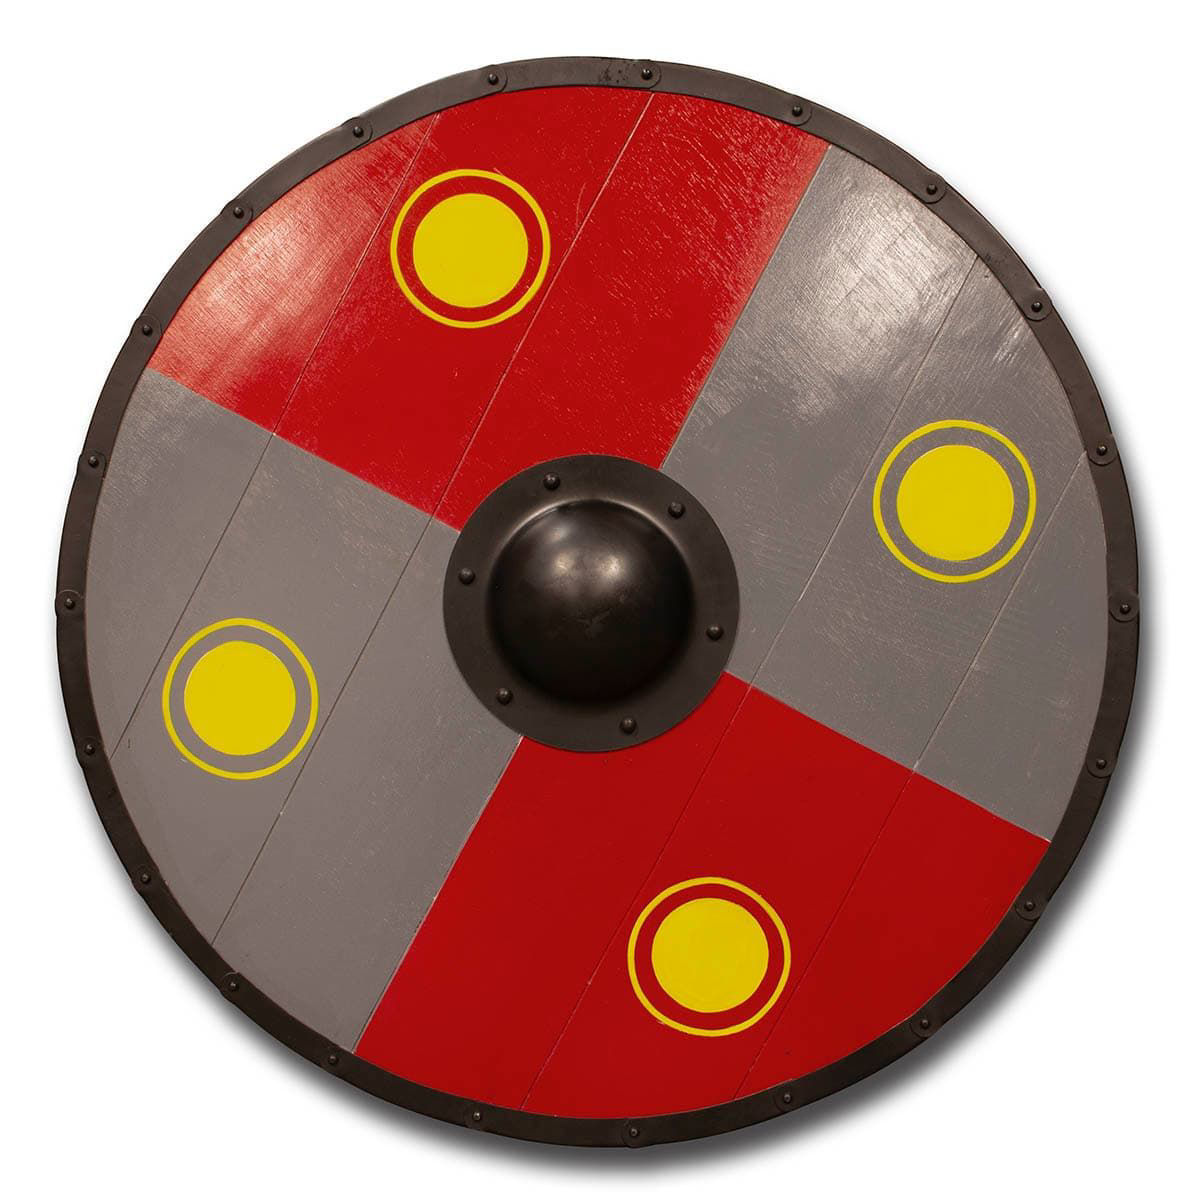 Viking Shield made with wood planks and hand painted with grey and red quadrants and yellow circles